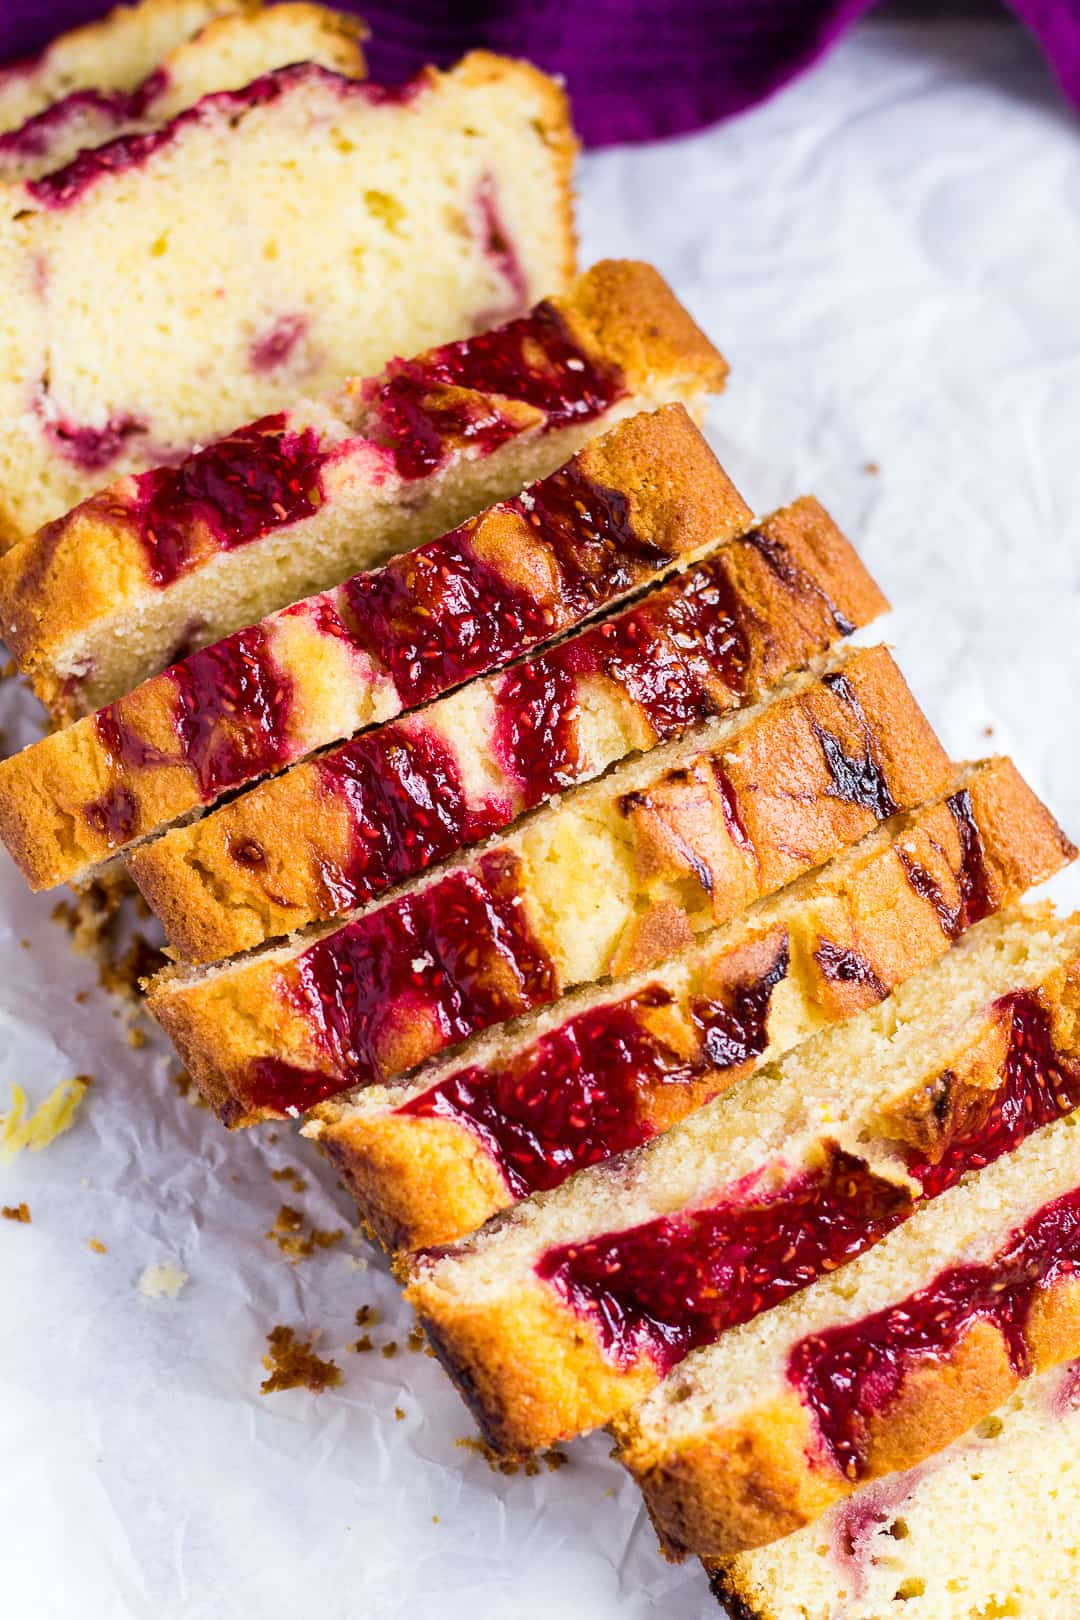 Overhead shot of raspberry swirl lemon pound cake cut into slices on parchment paper.